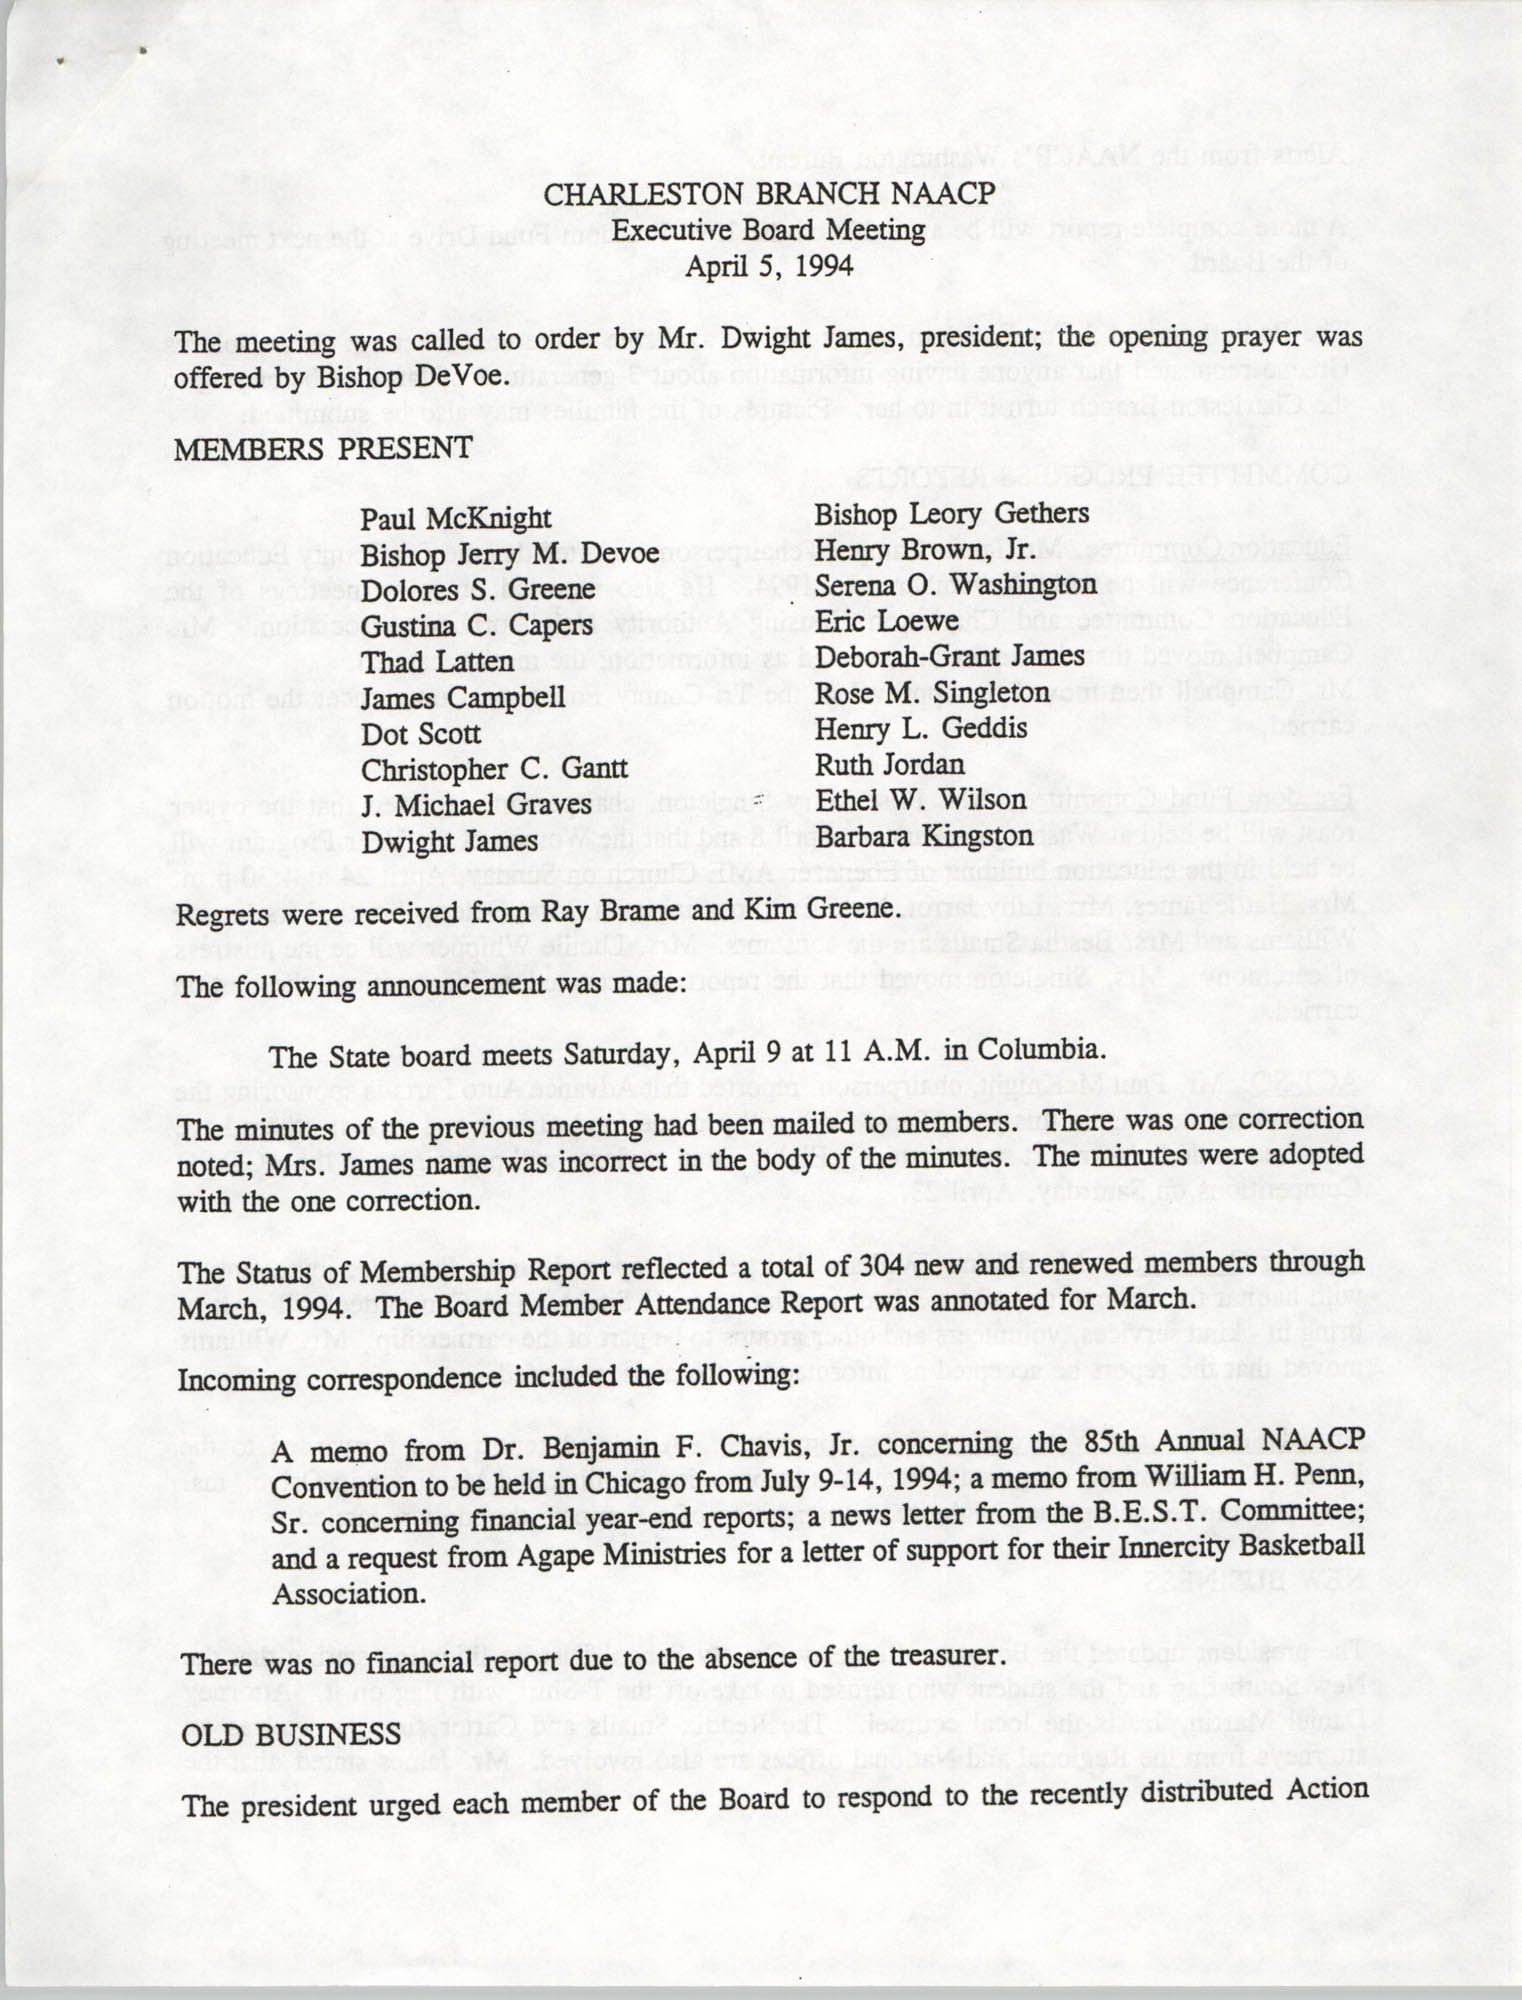 Minutes, Charleston Branch of the NAACP Executive Board Meeting, April 5, 1994